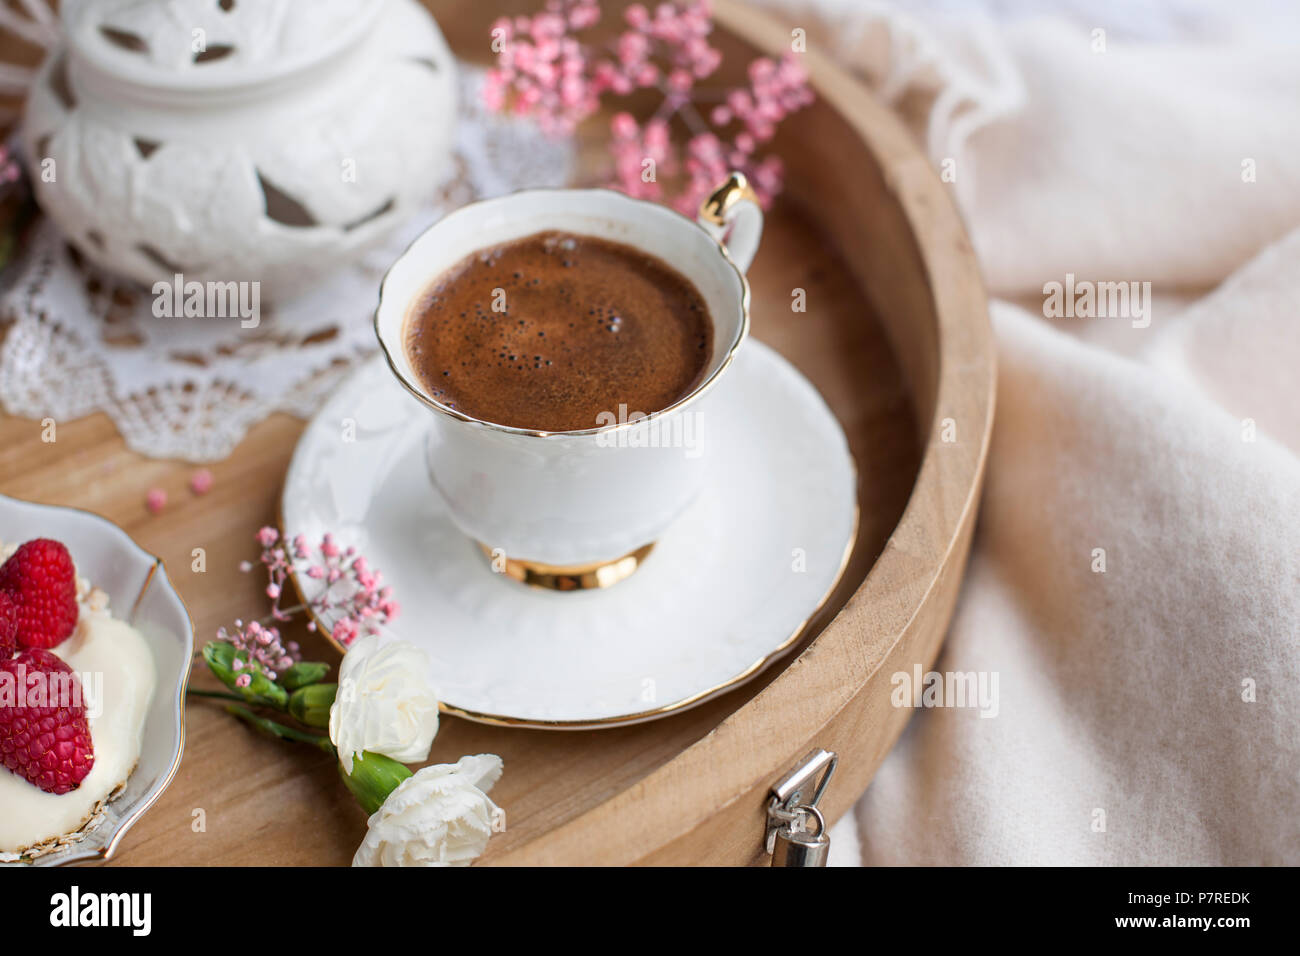 White and pink flowers. Breakfast in bed. Flavored coffee. Delicate light colors. Romance. Place for text. Stock Photo